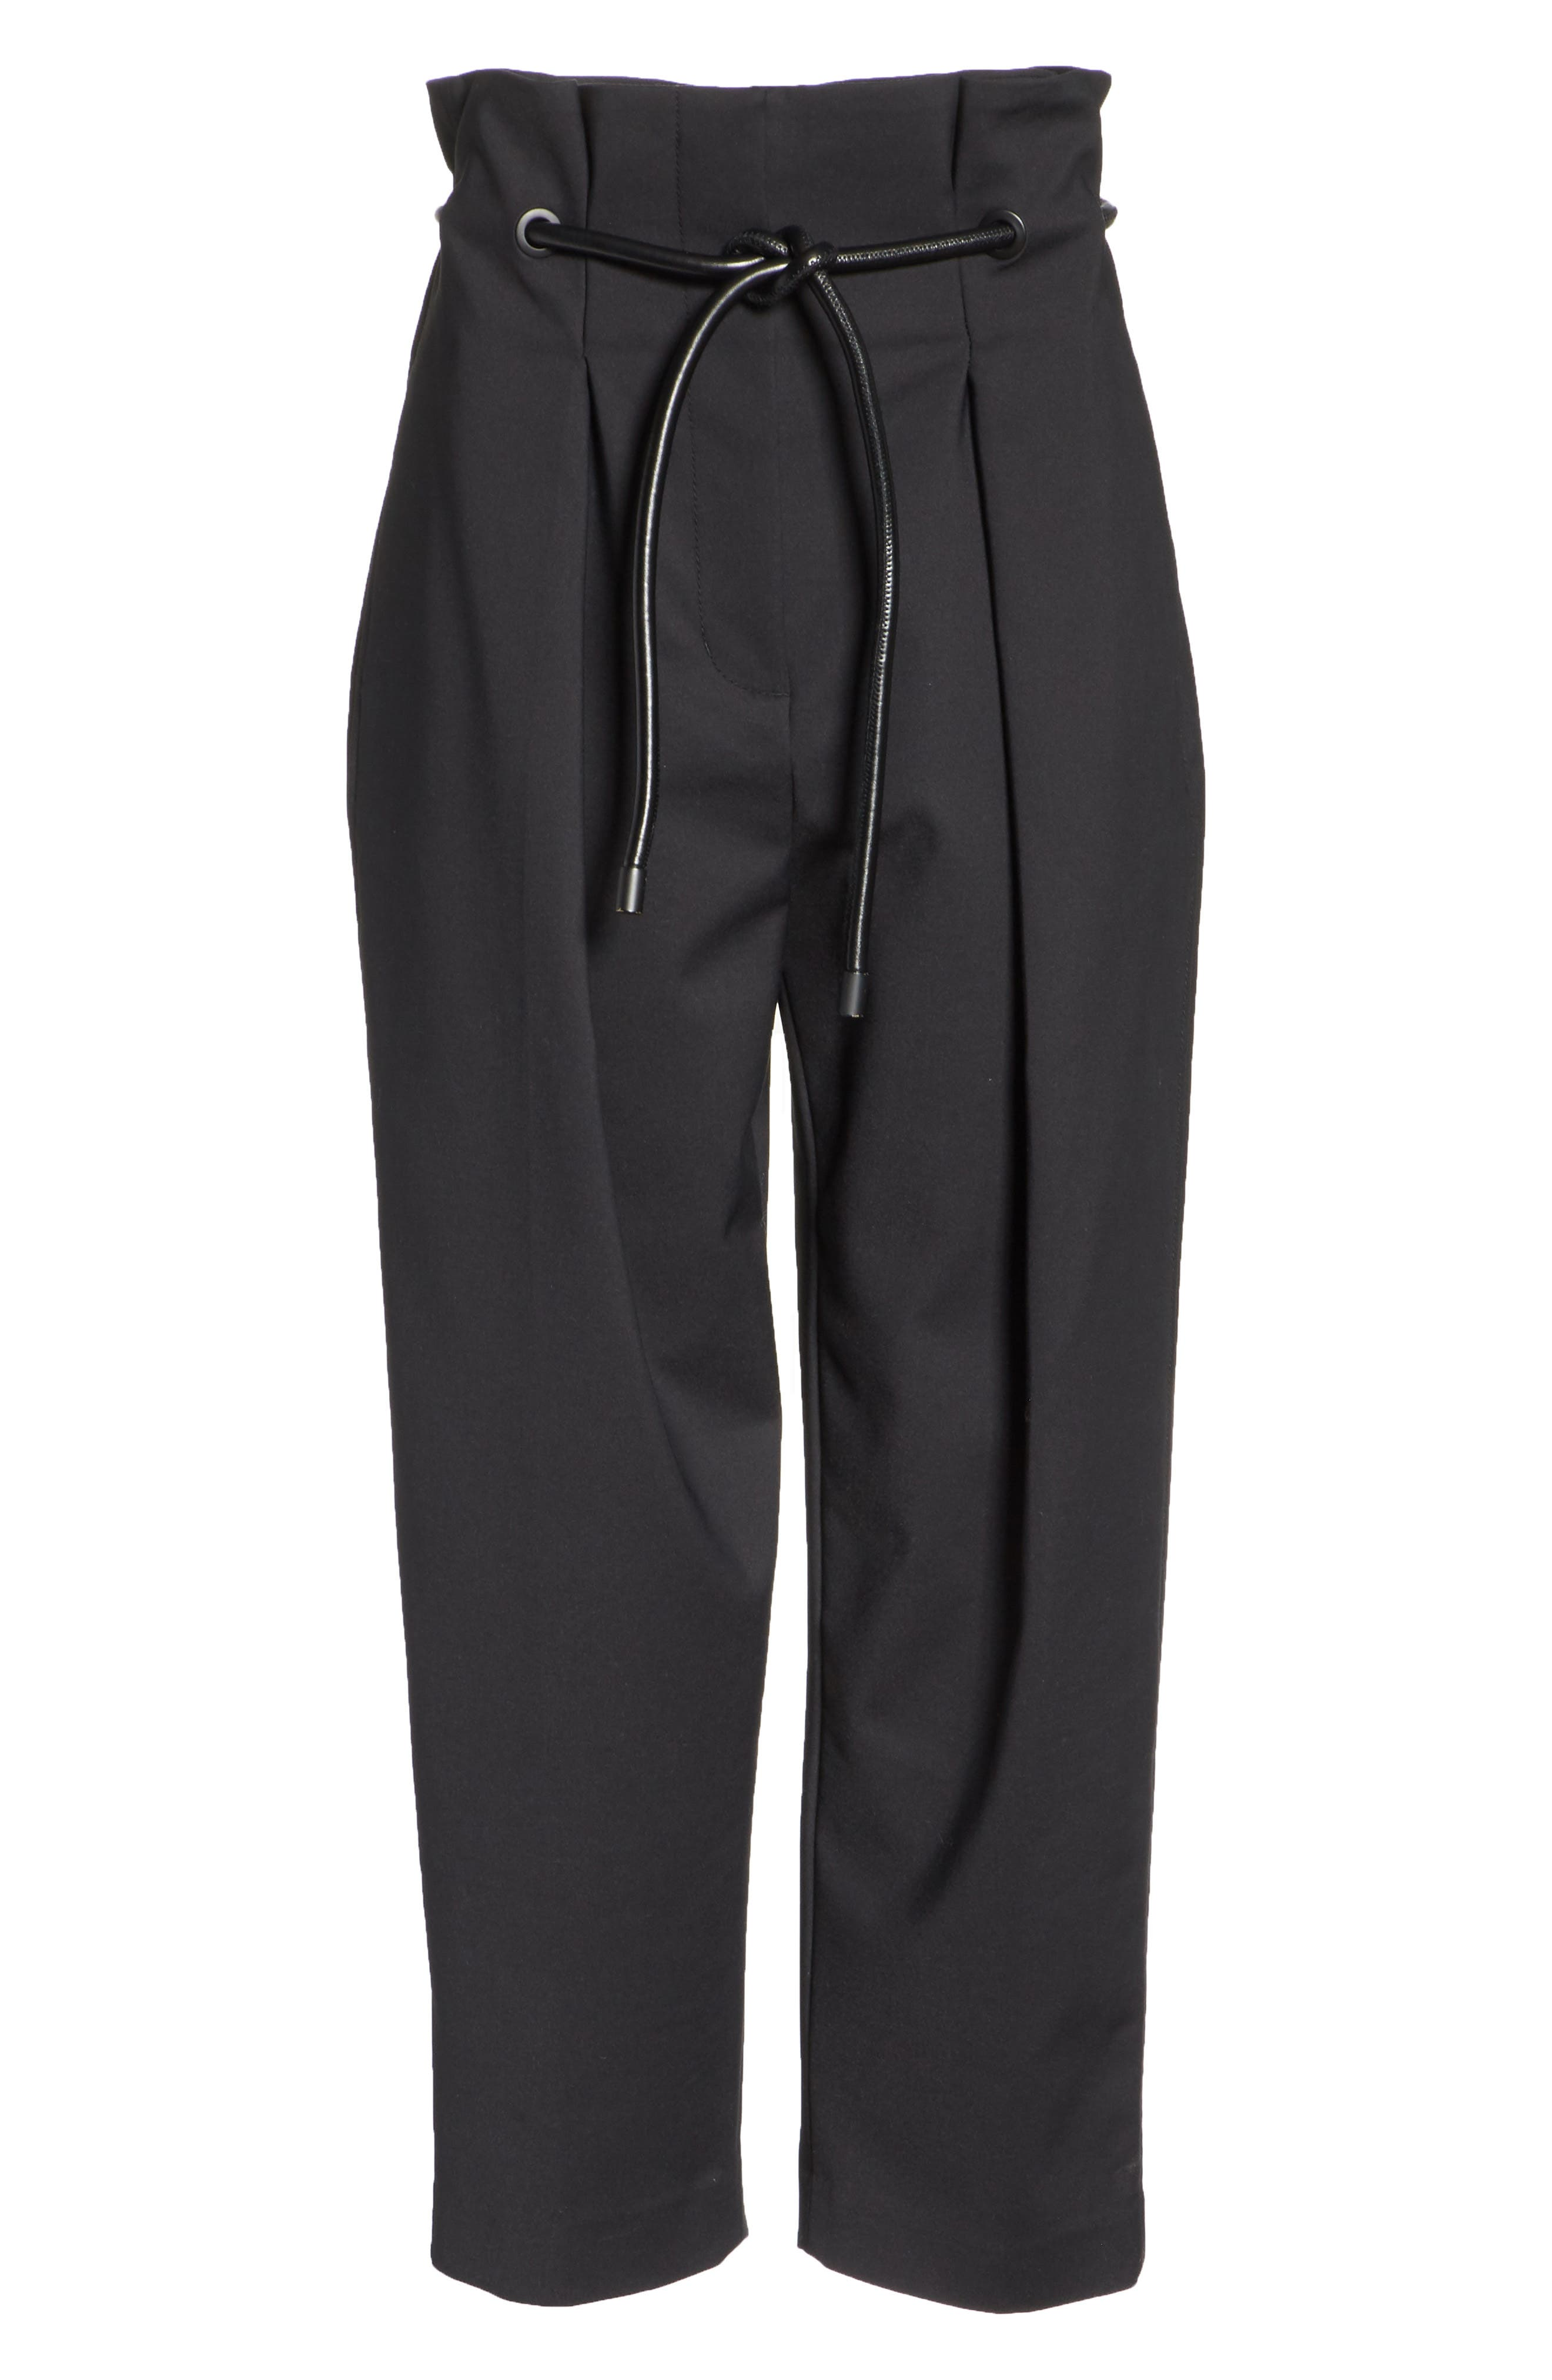 Origami Crop Flare Pants,                             Alternate thumbnail 6, color,                             Black